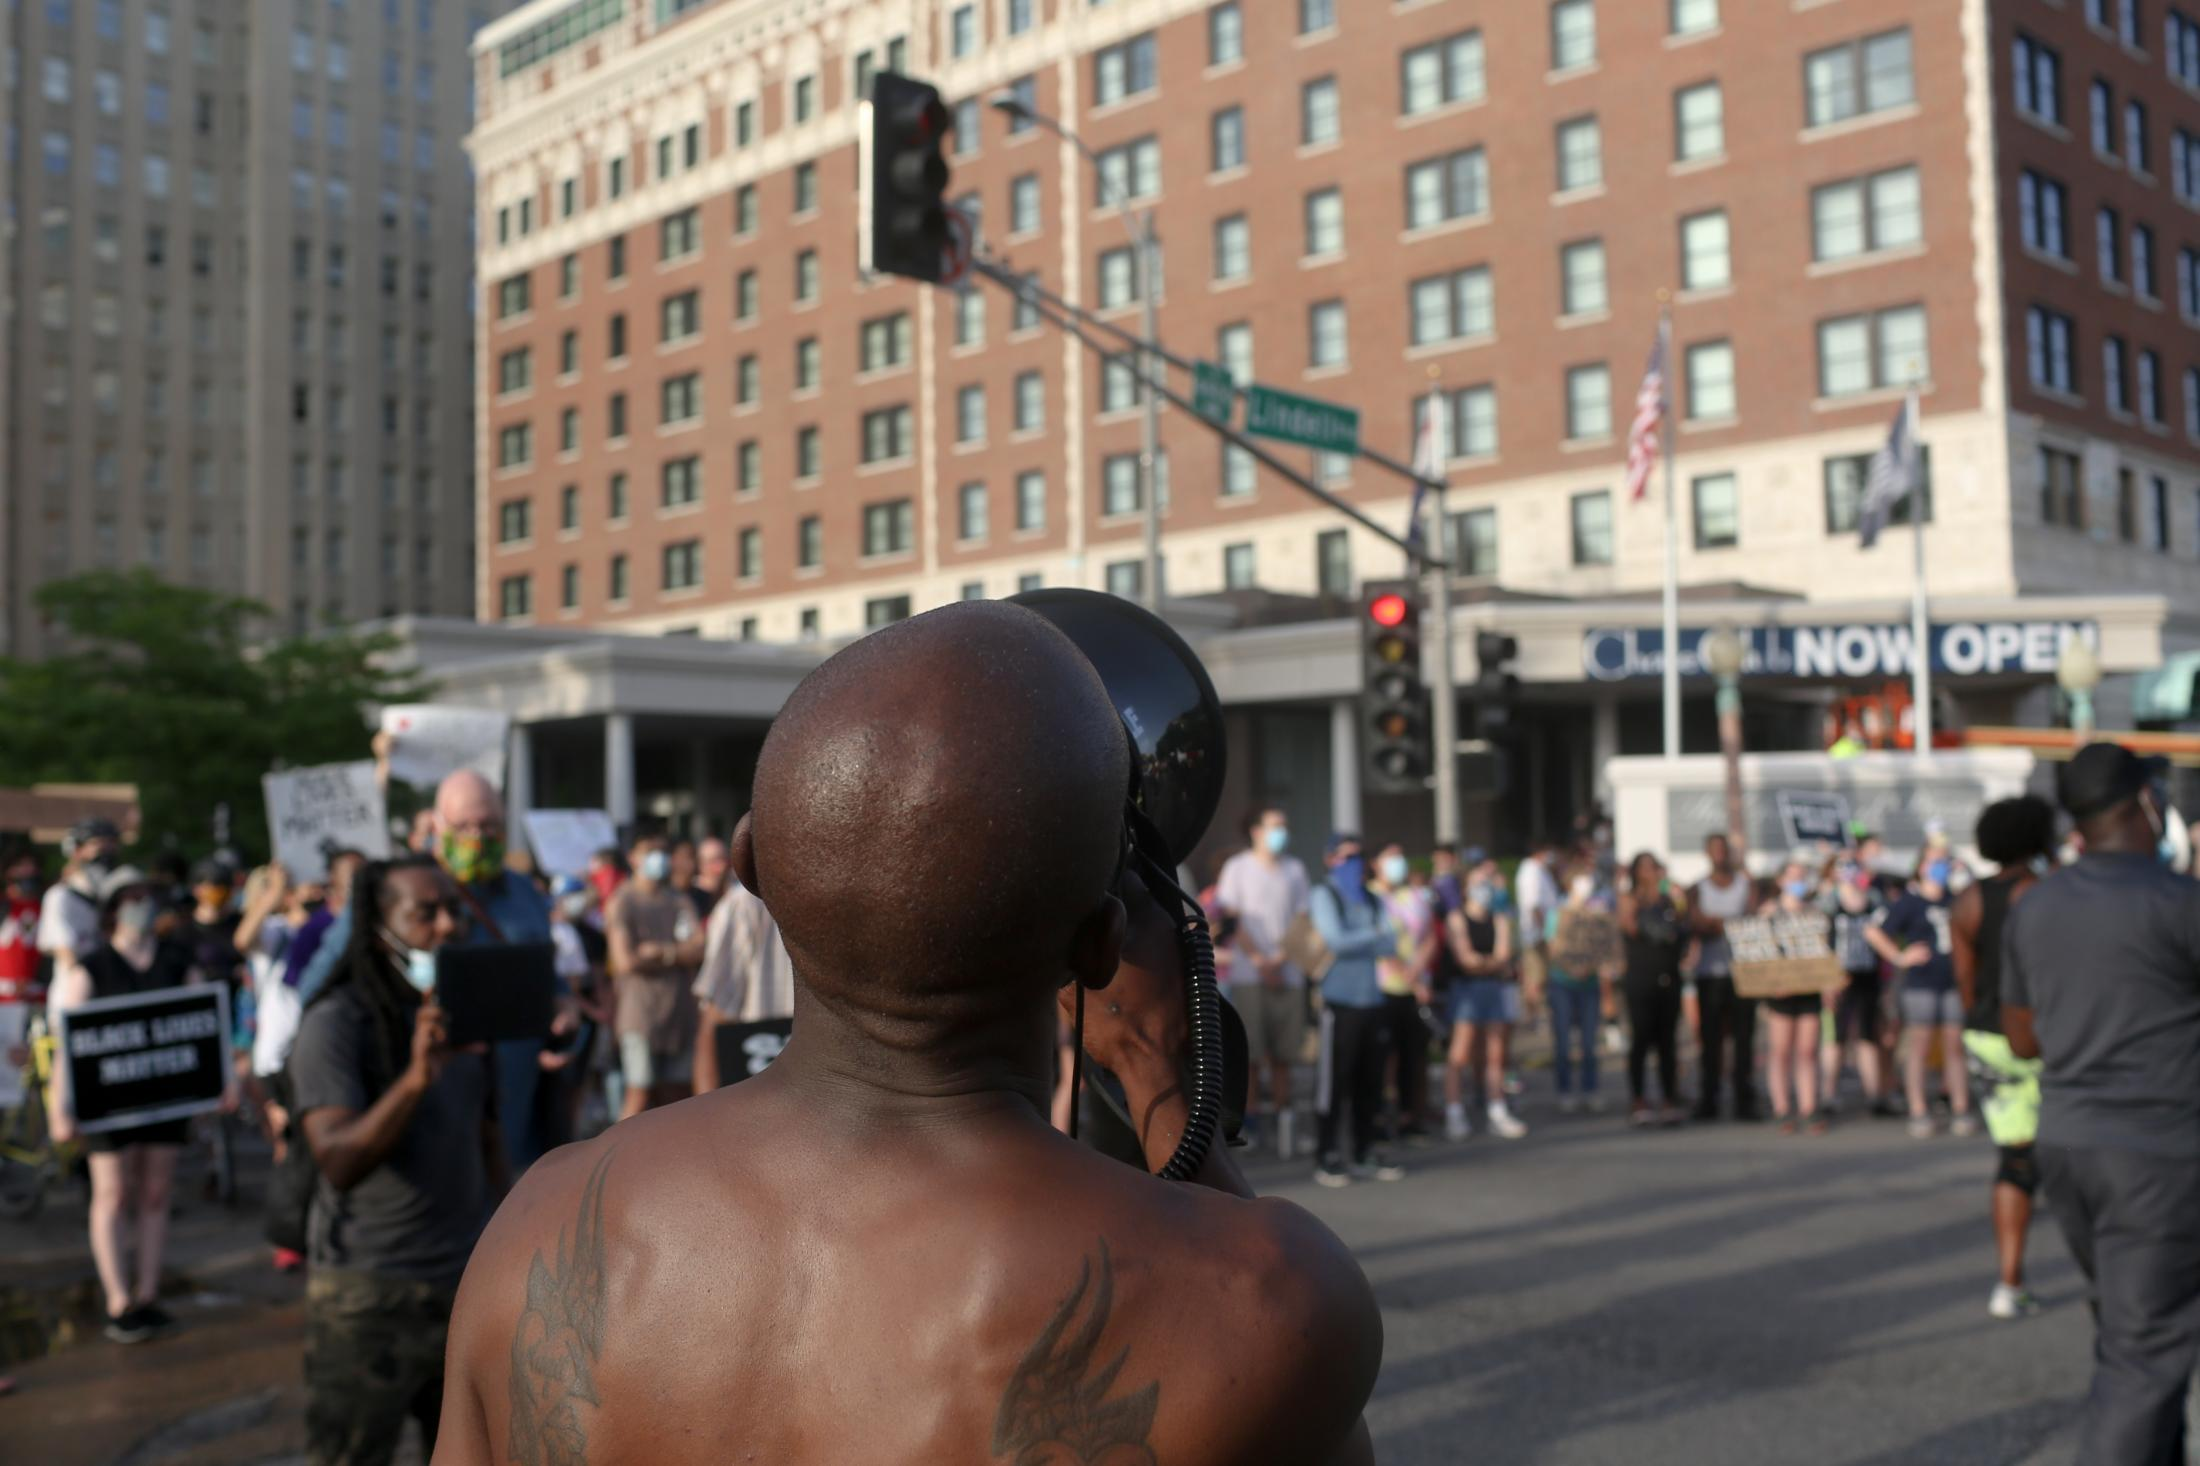 A protesters chants into a mega phone in front of the Ritz-Carlton Hotel on June 28, 2020 in St. Louis, Missouri. Two protest marches merged on Kingshighway in the Central West End neighborhood of St. Louis and planned on marching to the St. Louis mayor's house.